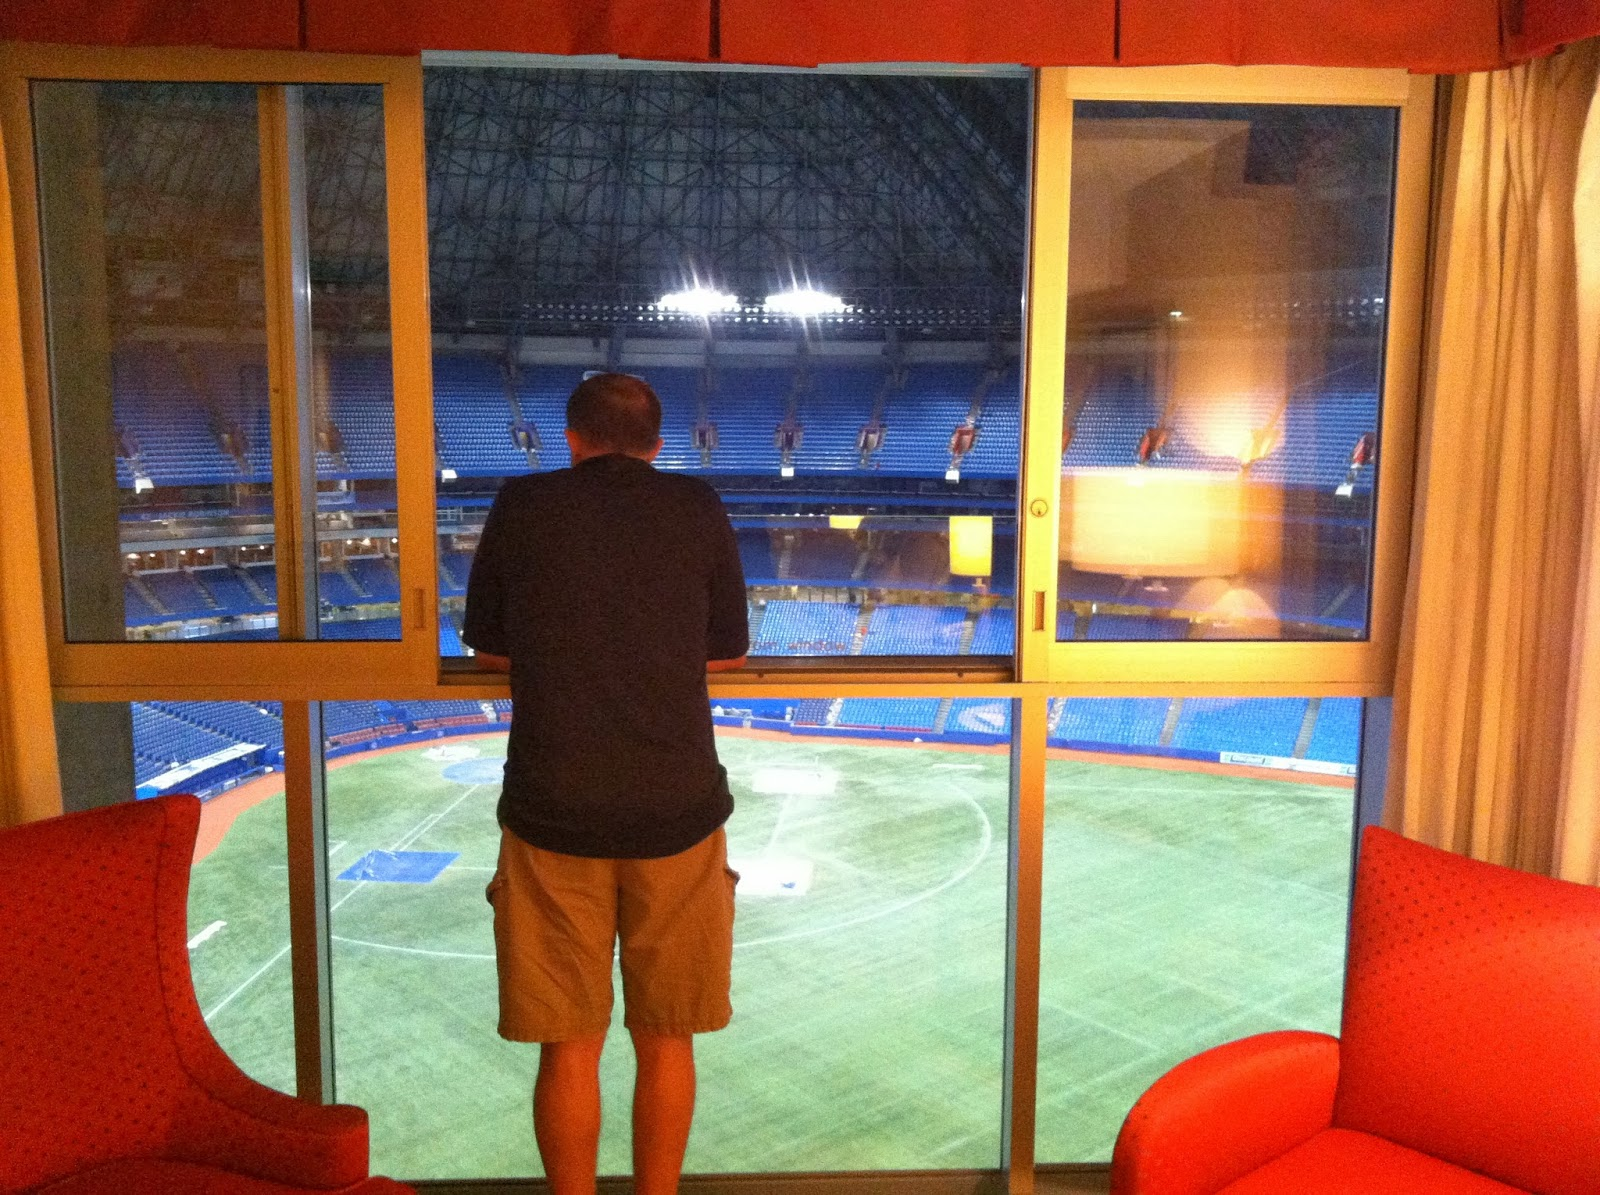 Couple having sex at skydome